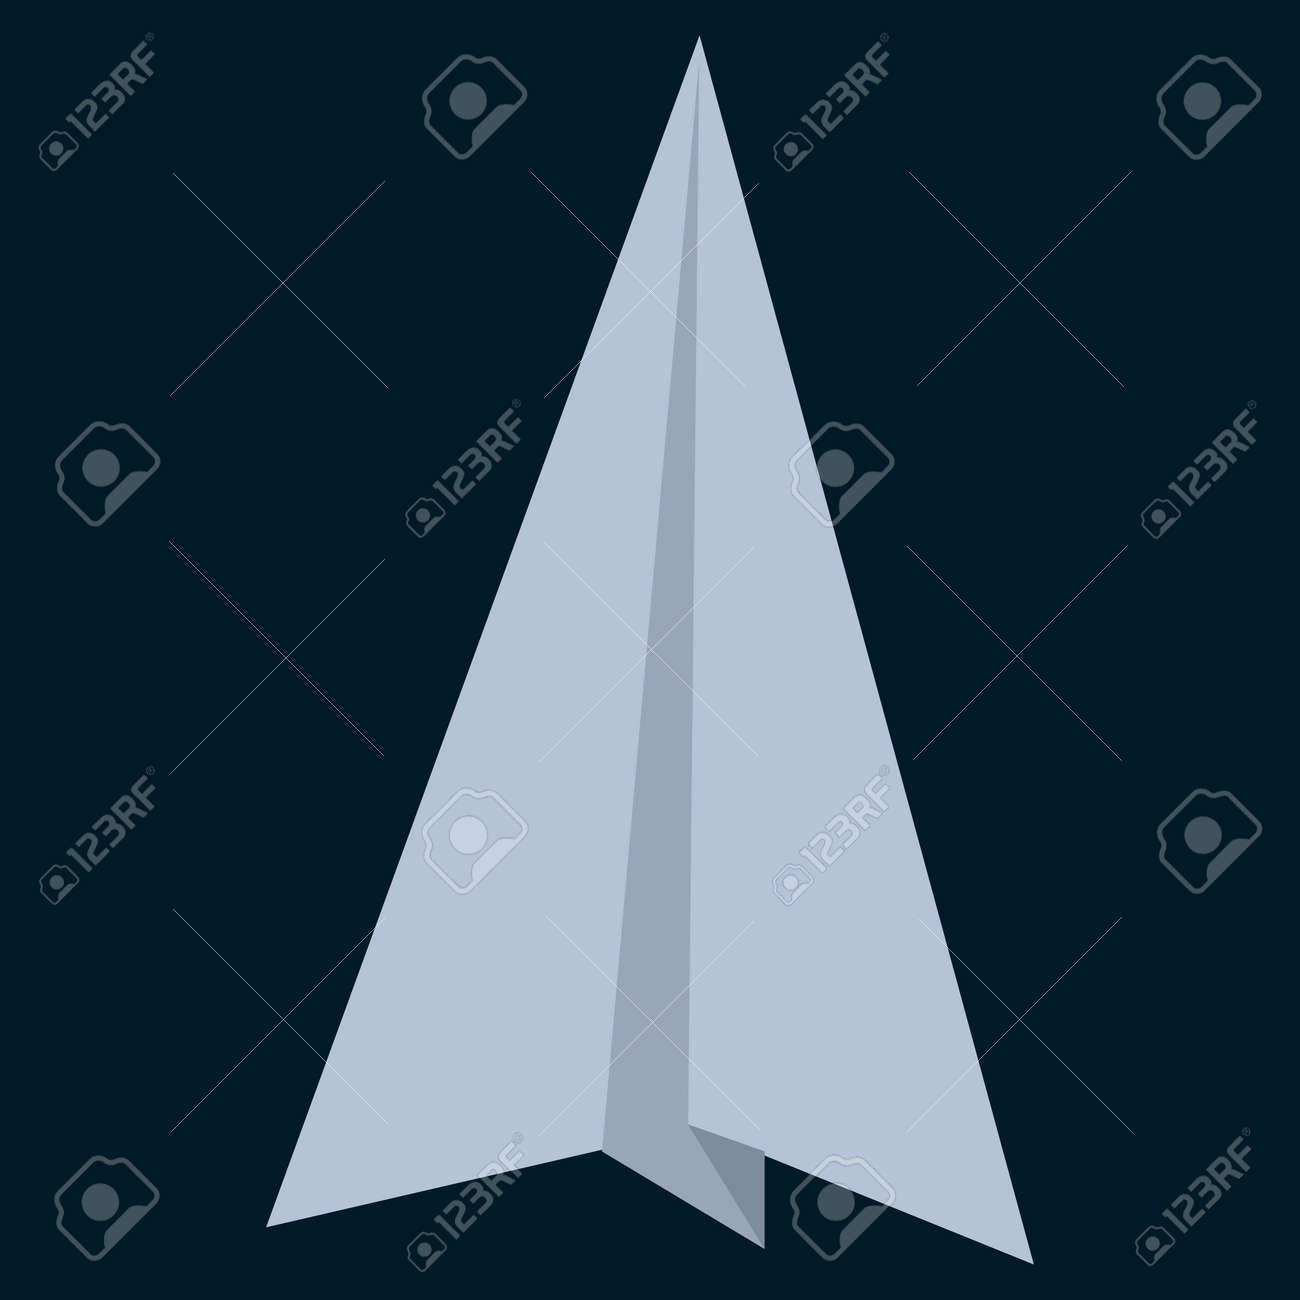 Paper Origami Plane Flat Icon Vector Sign Colorful Pictogram Isolated On Black Symbol